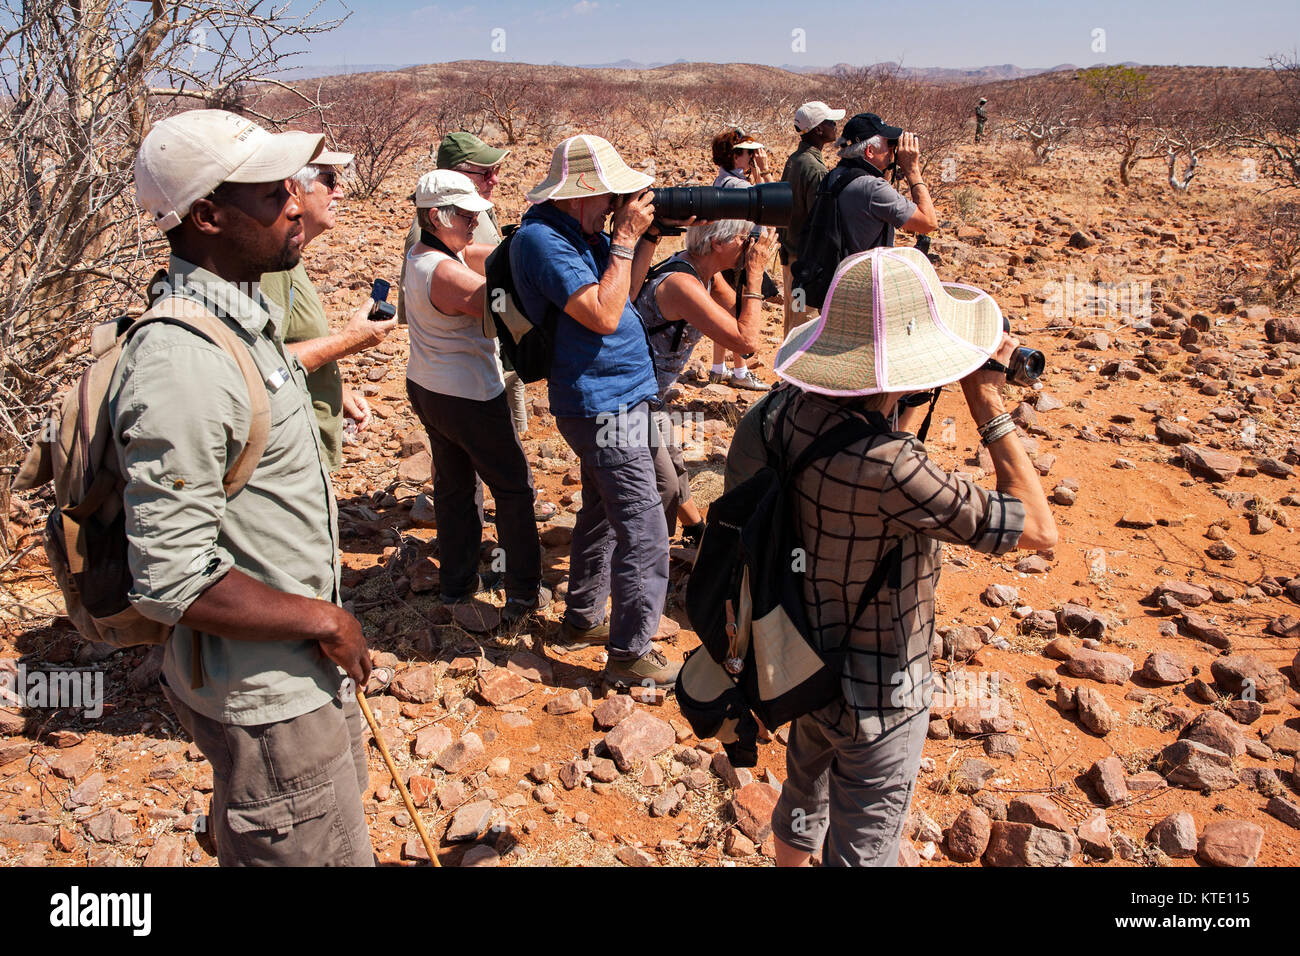 Group of people rhino trekking at Huab Under Canvas, Damaraland, Namibia, Africa - Stock Image